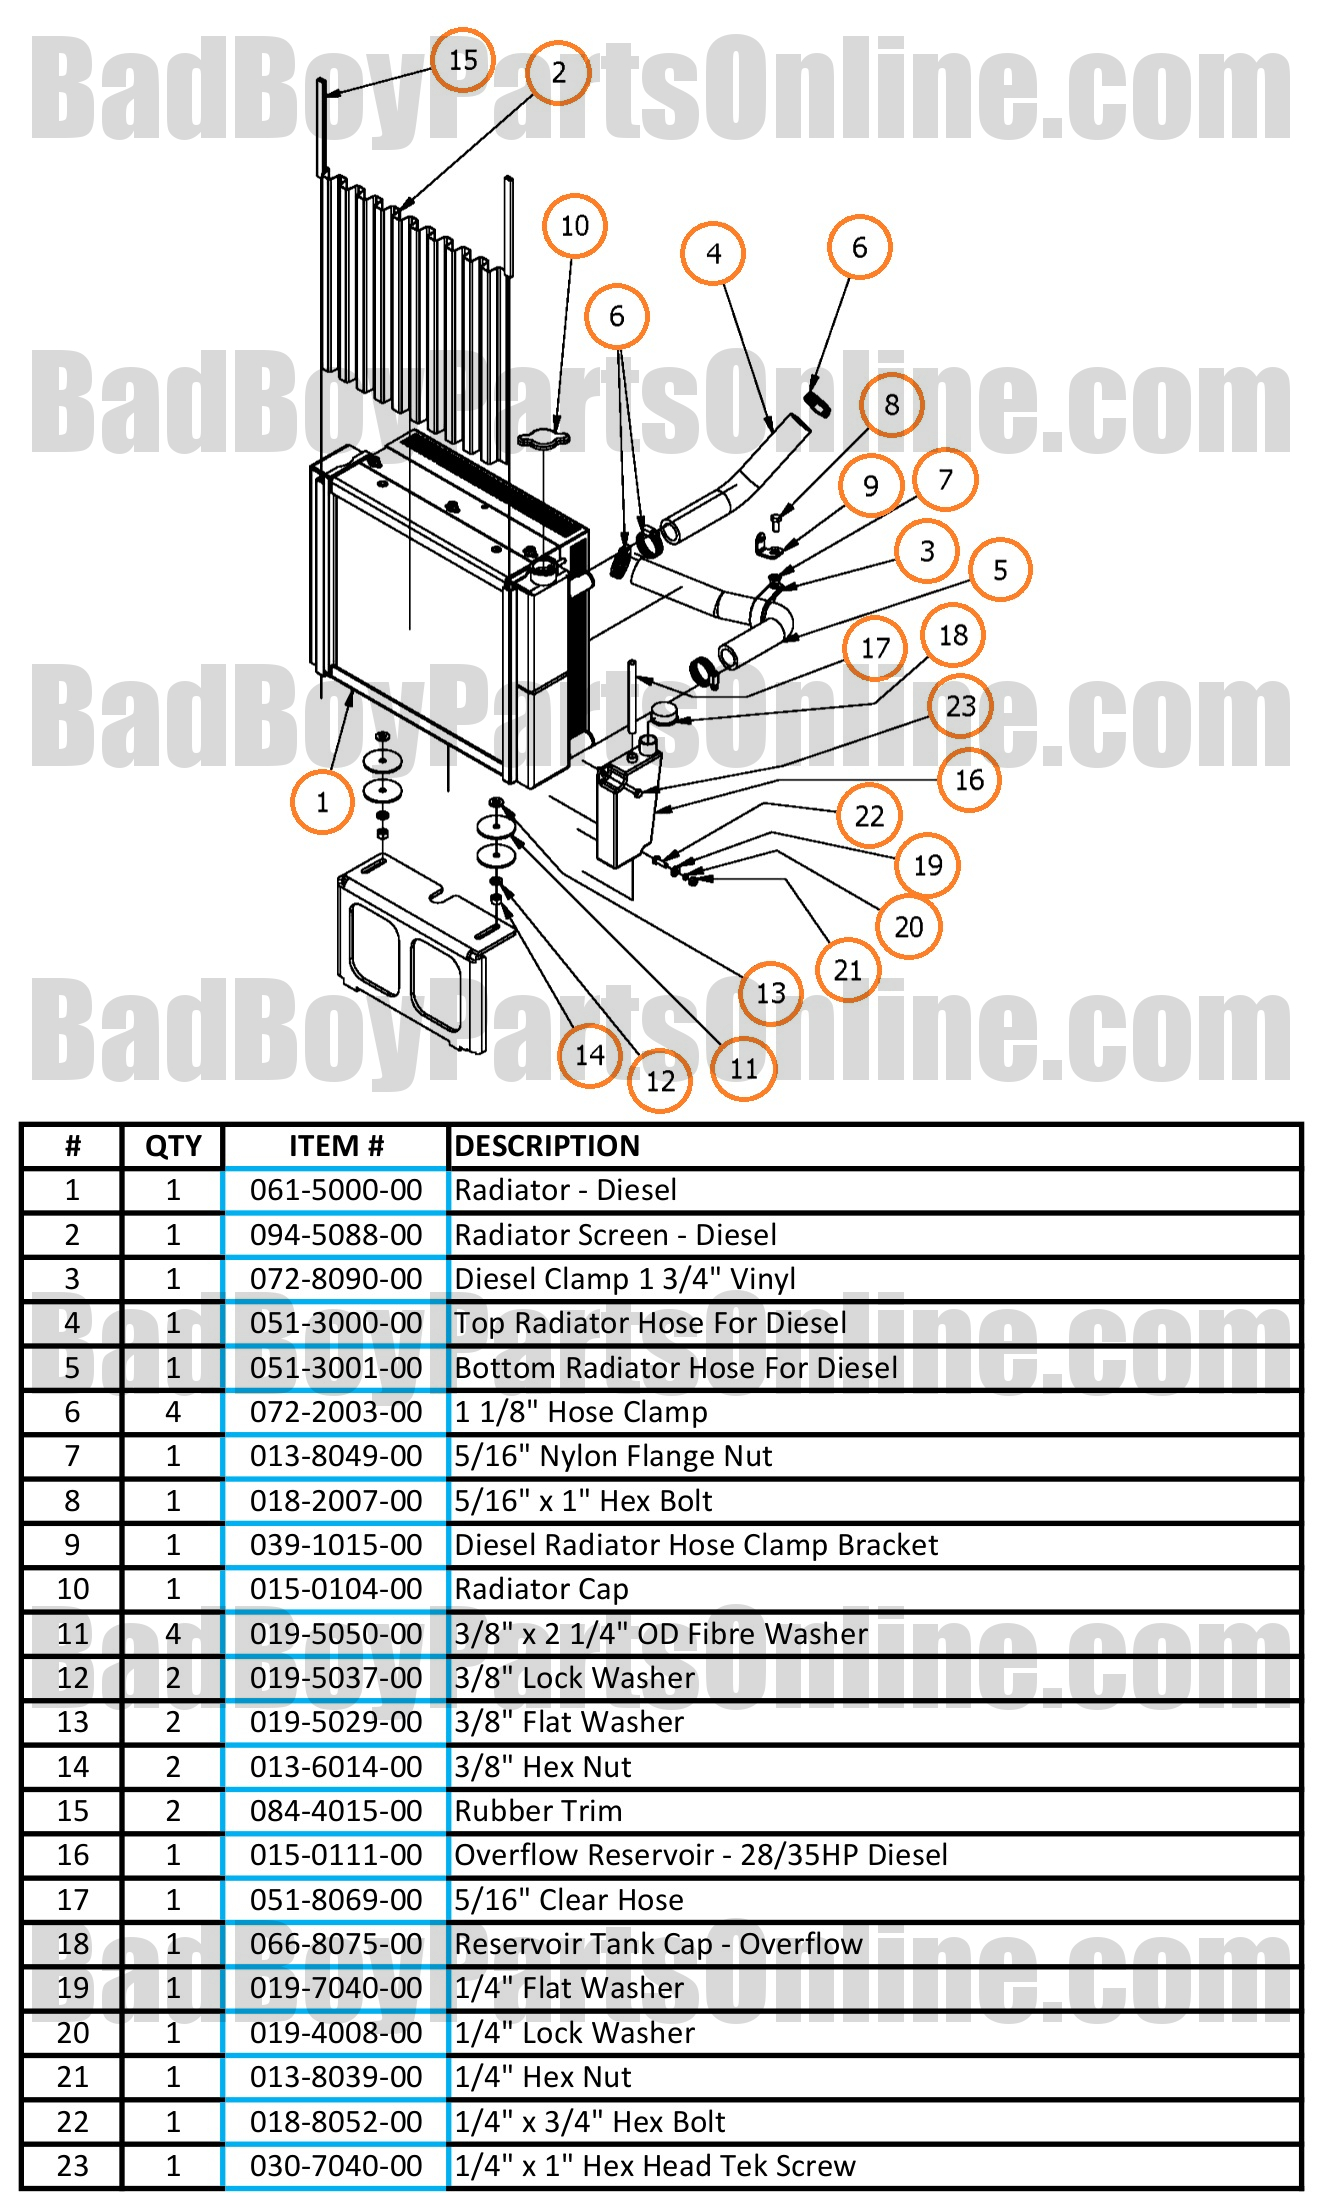 2017 compact diesel radiator parts and schematic